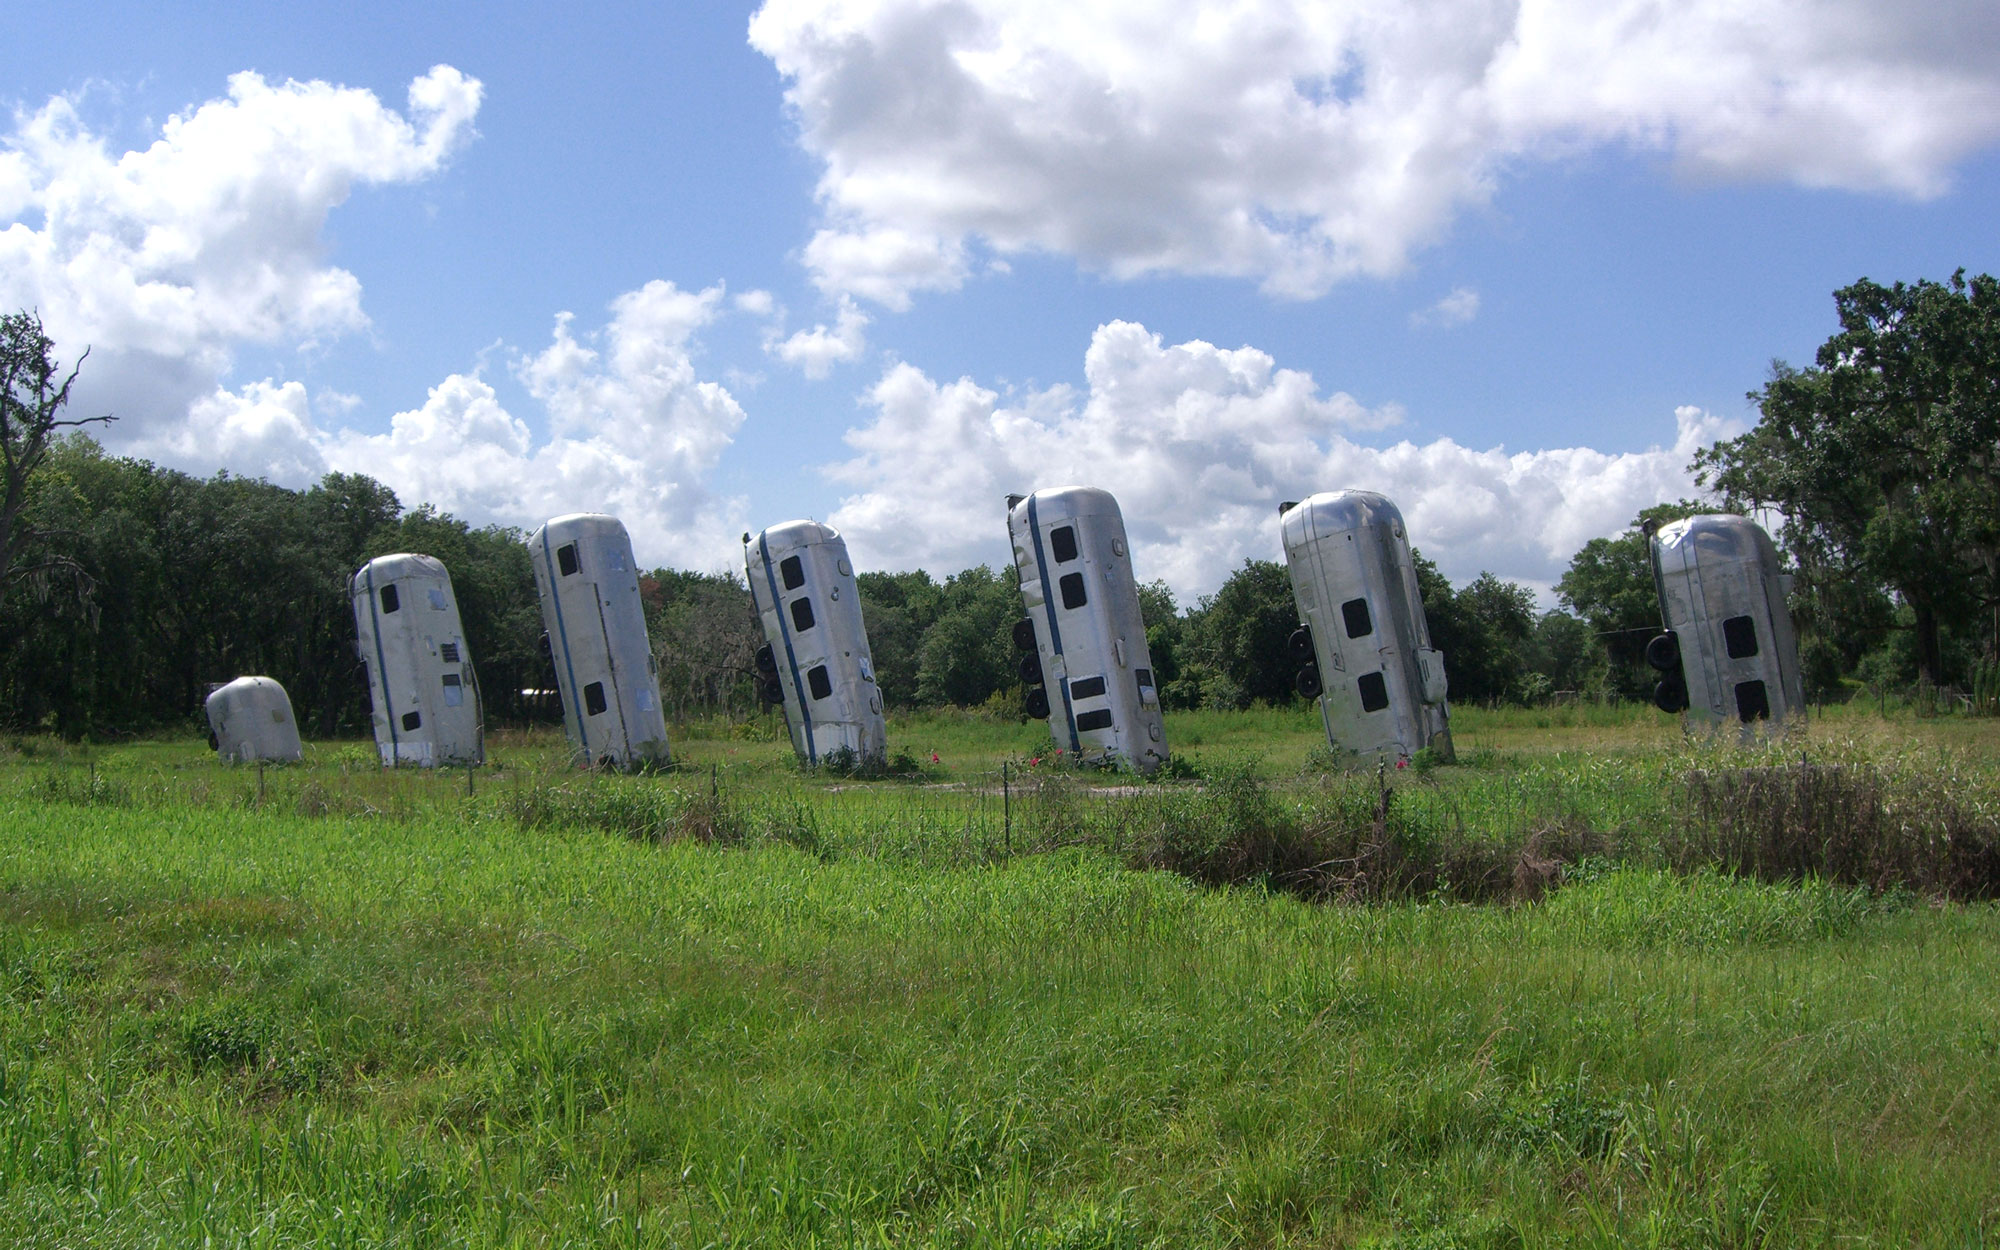 Weirdest Roadside Attractions: Florida: Airstream Ranch